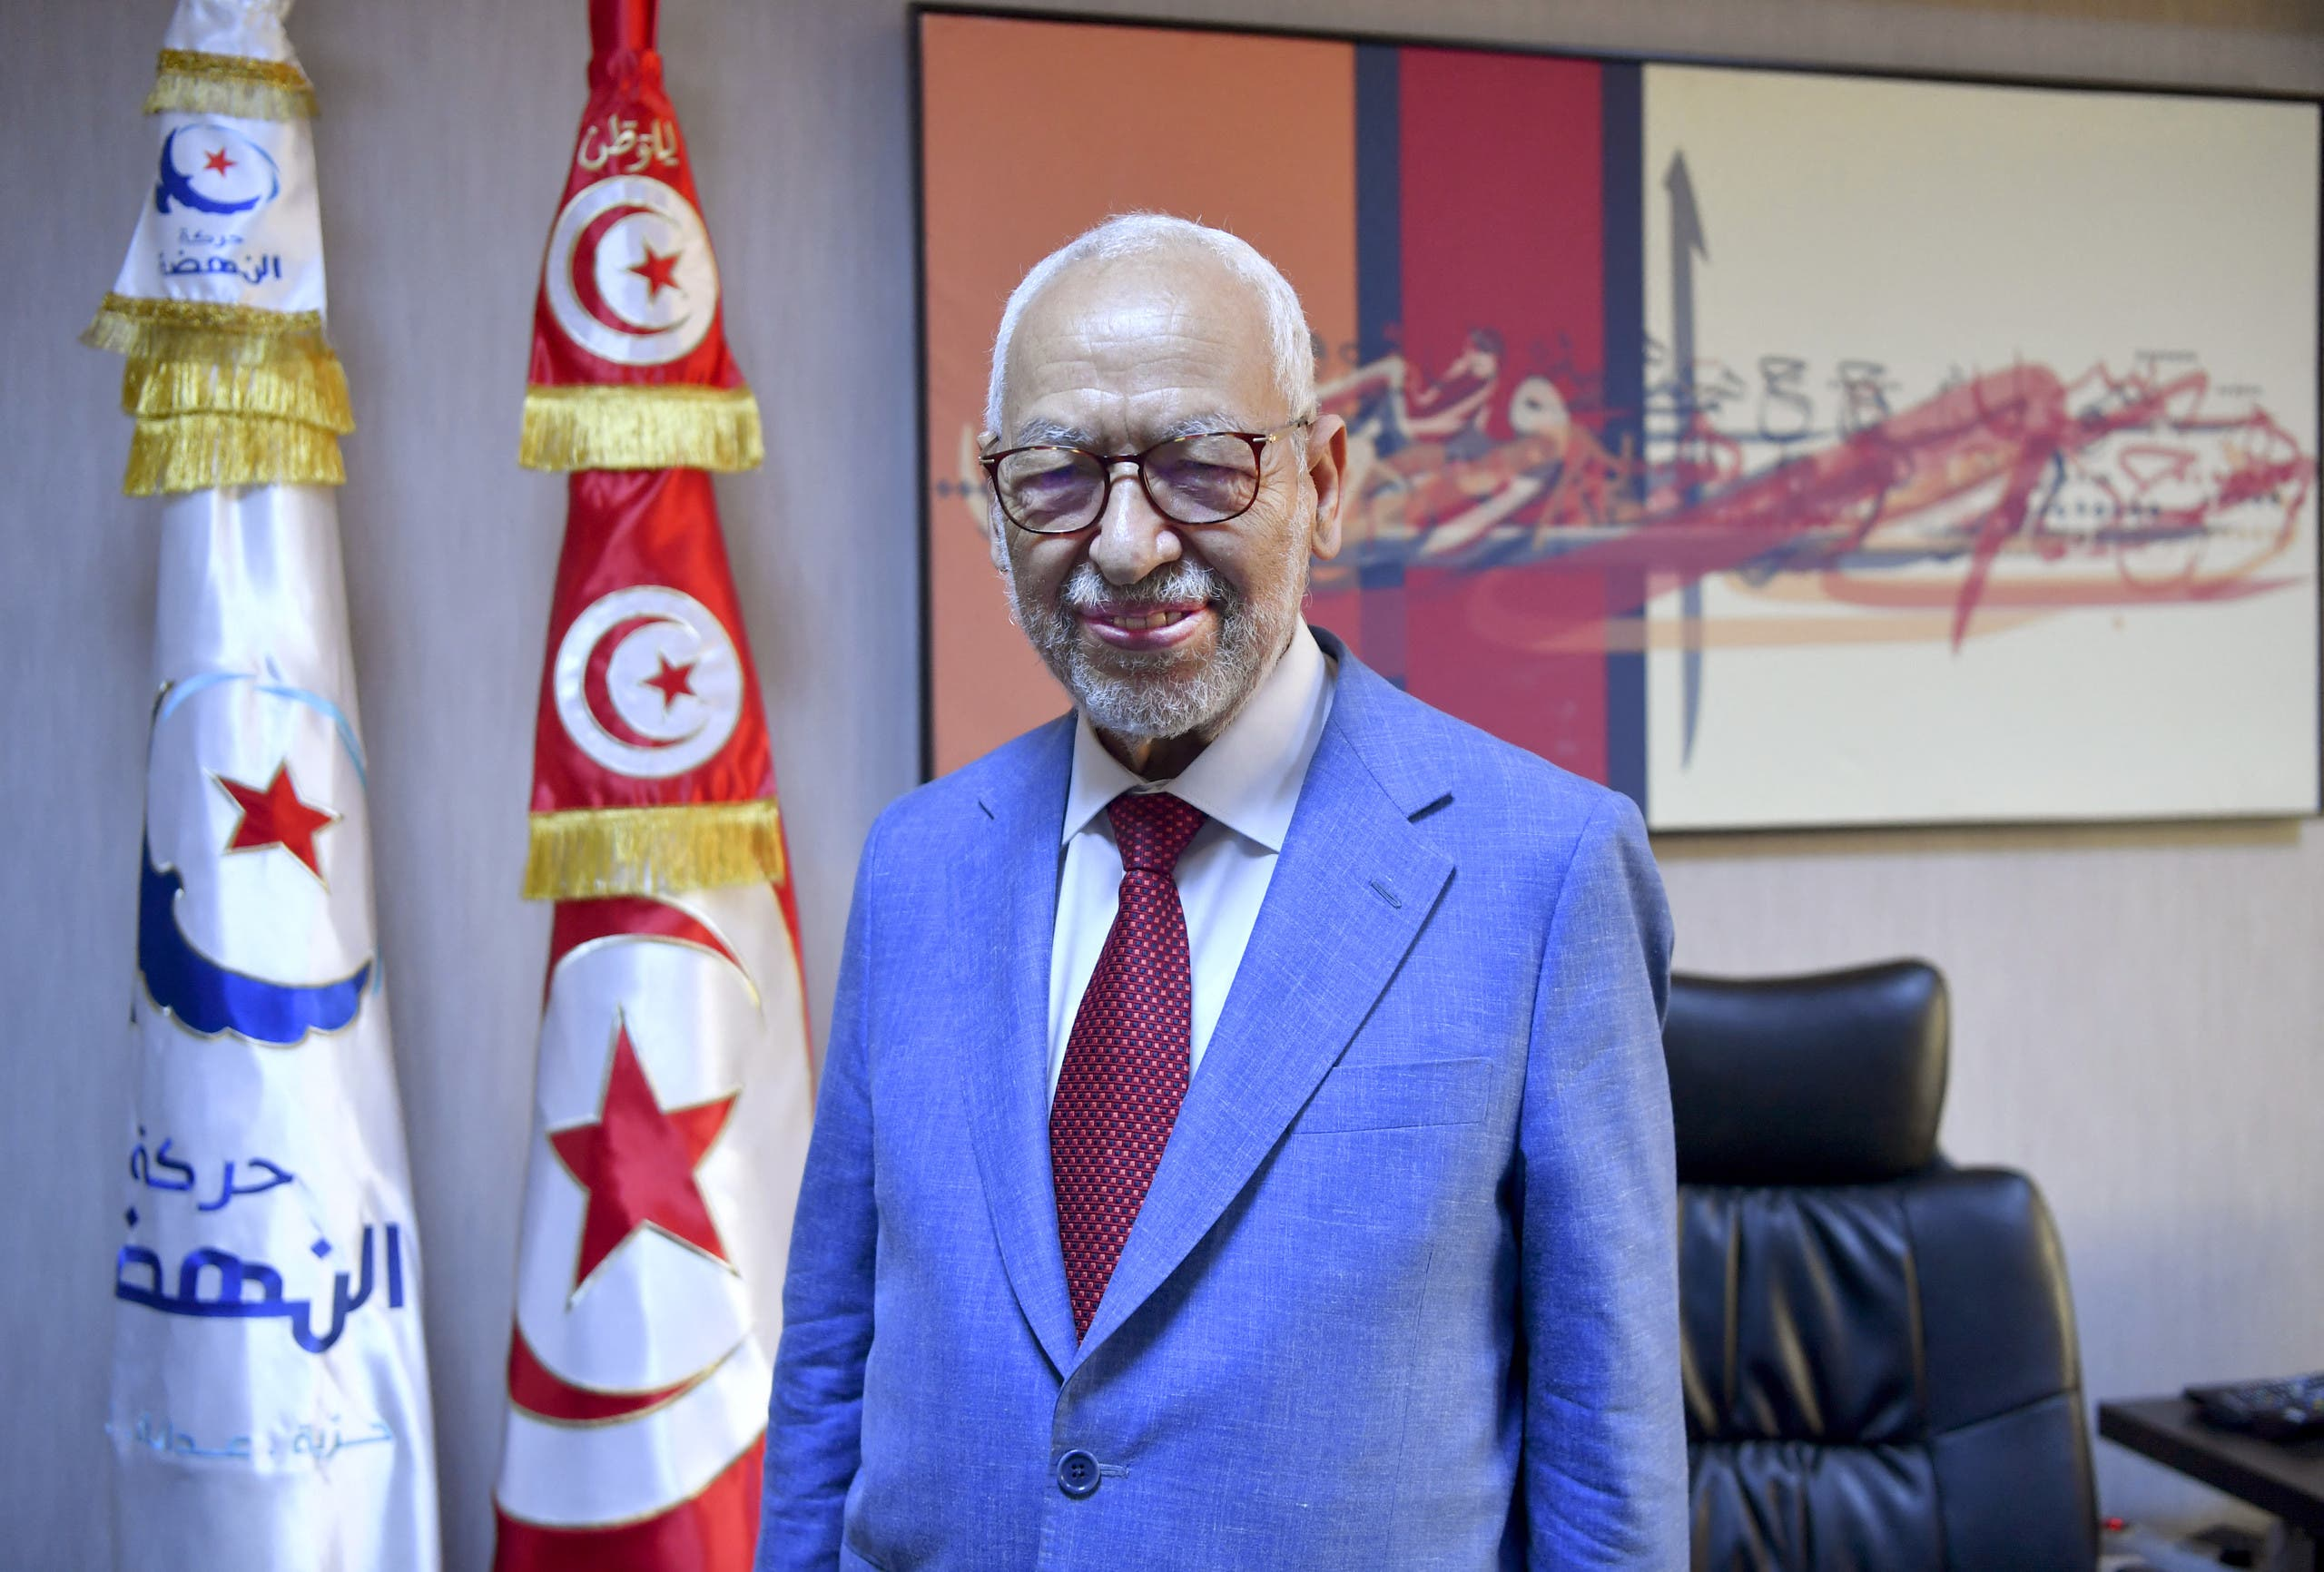 Tunisia's parliament speaker and Islamist Ennahdha party leader Rached Ghannouchi says the party is the victim of a coup d'état in Tunisia. (File photo: AFP)